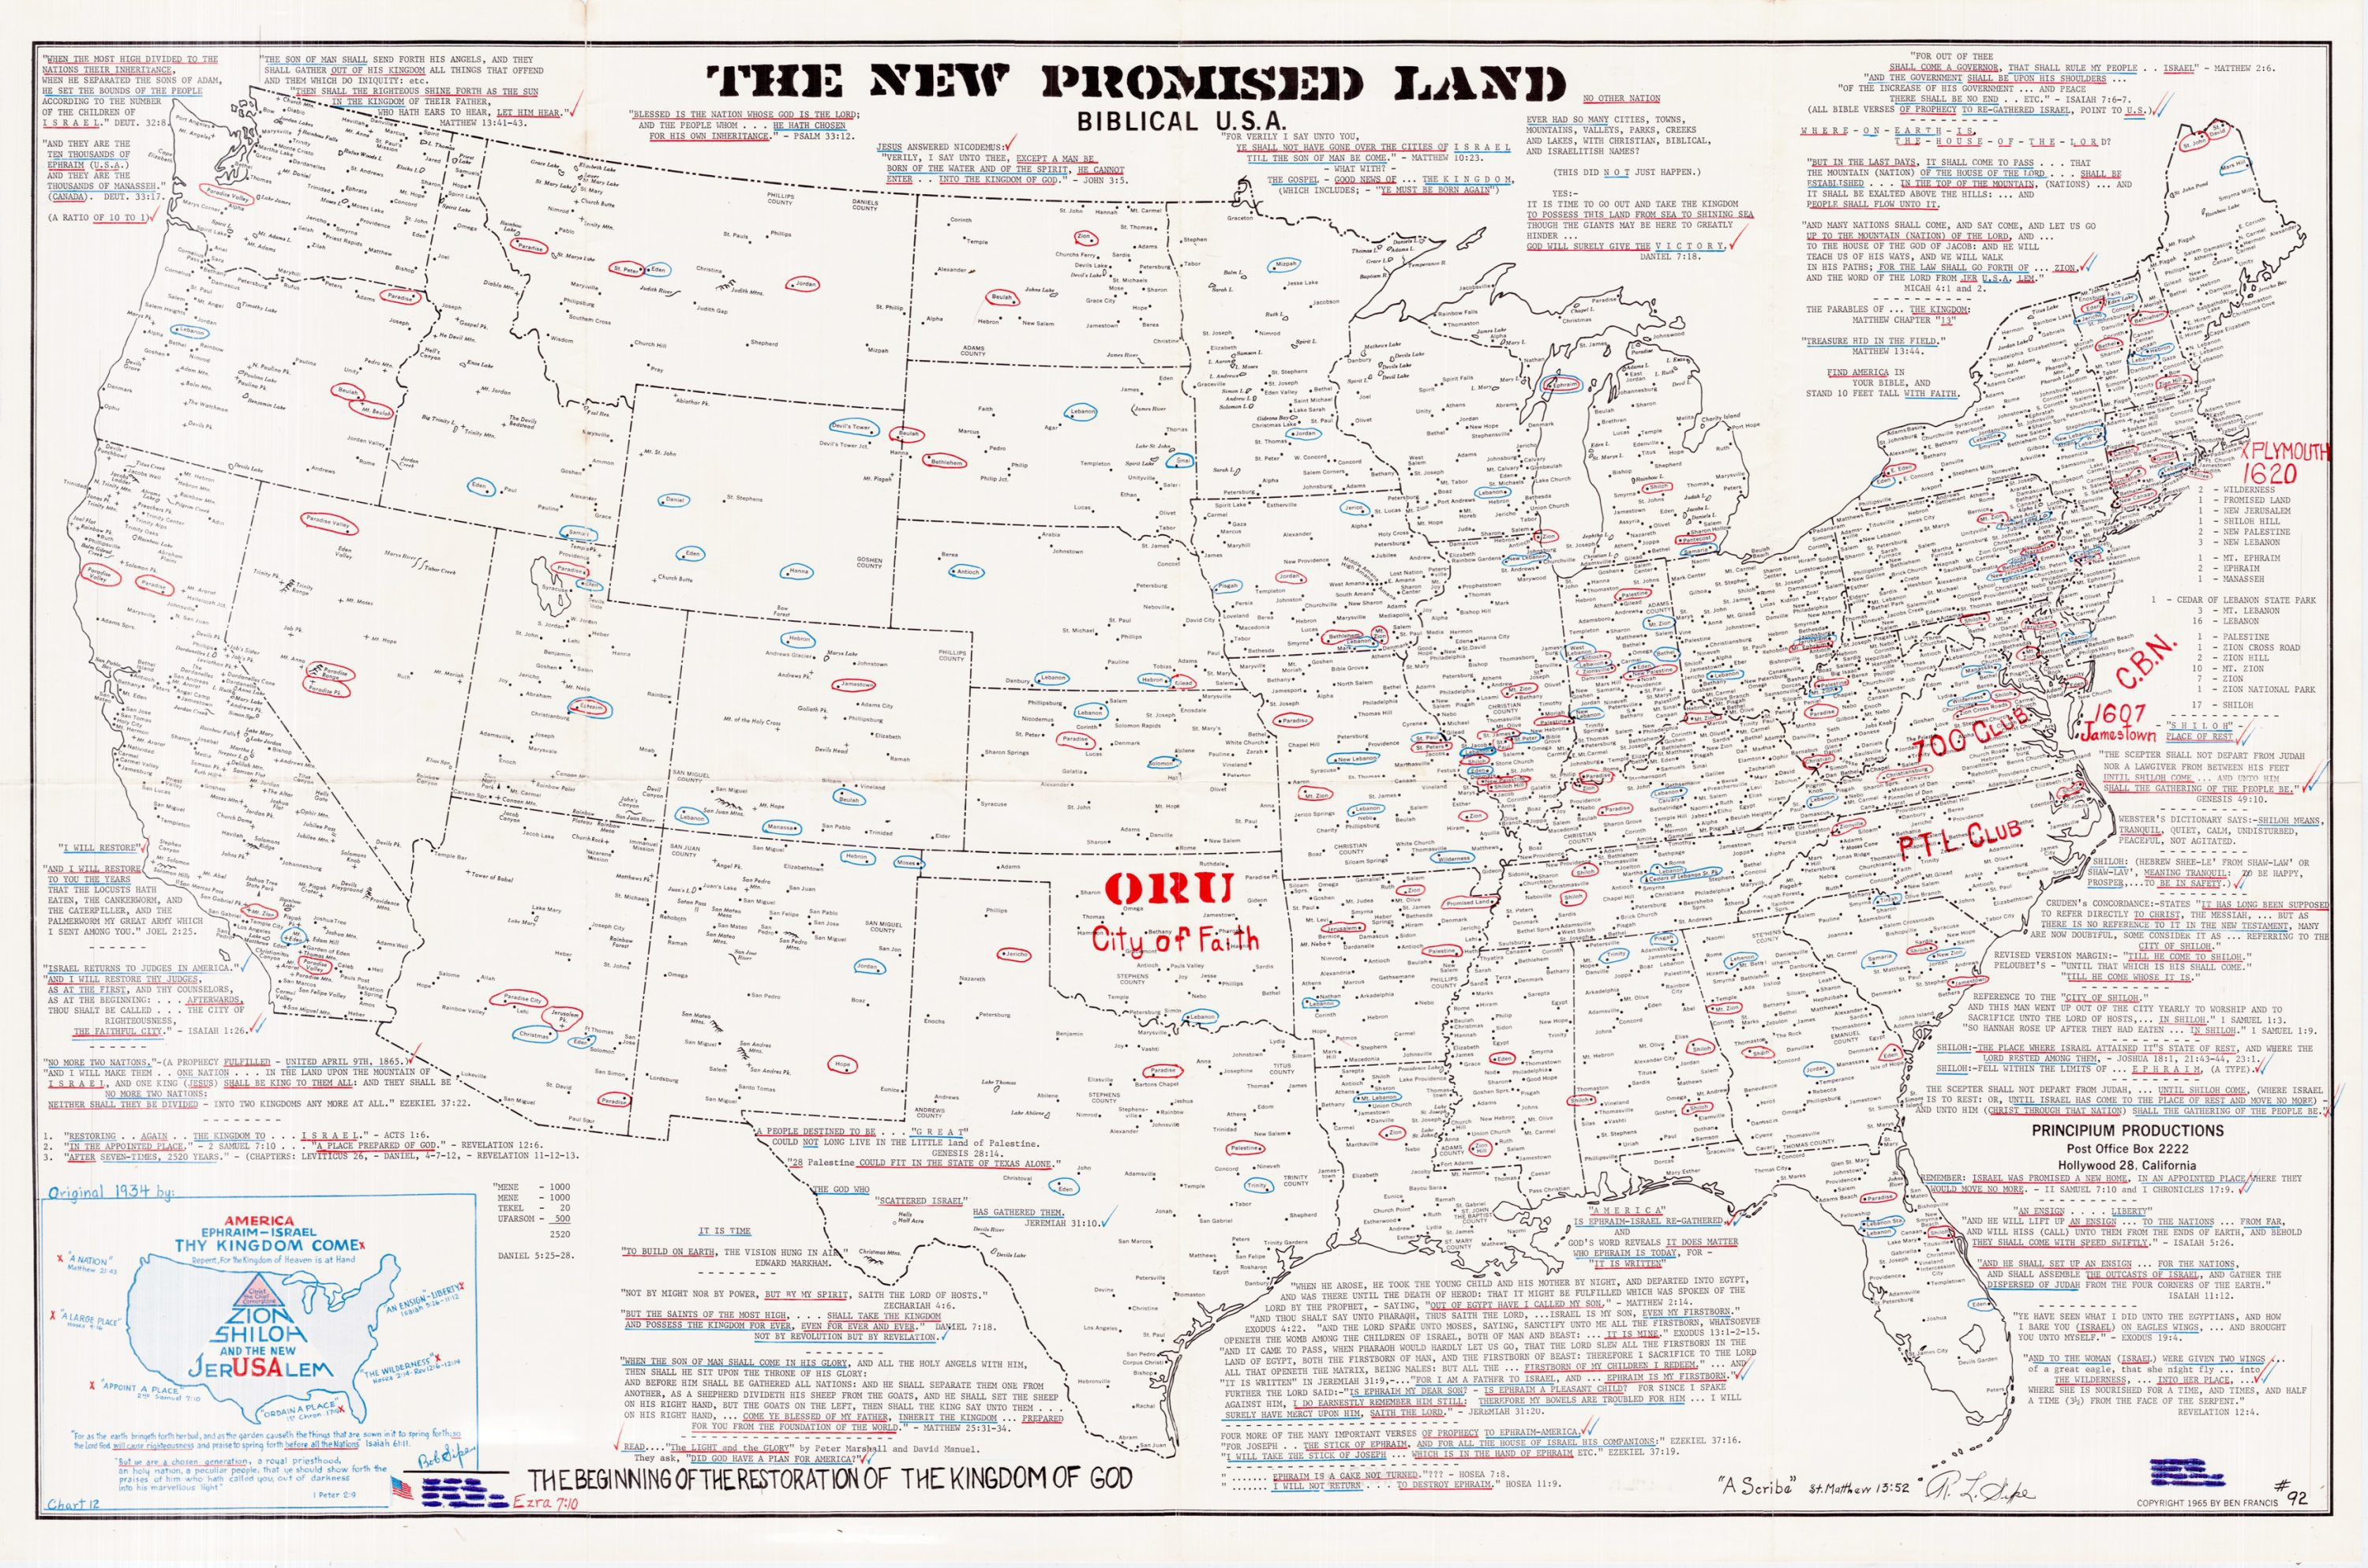 What Is The Map Of The United States.Evangelical Map Of The United States As The New Promised Land Rare